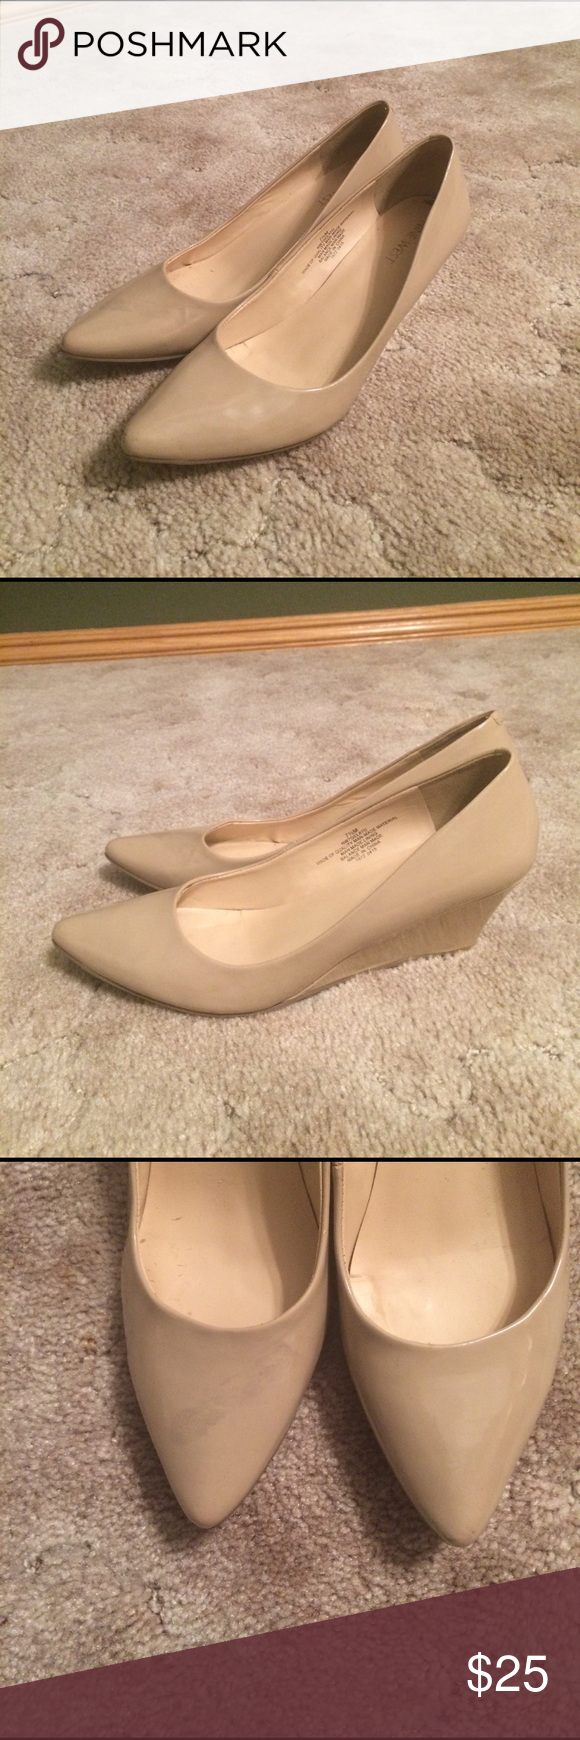 Nine West nude wedges These nude wedges are super cute and durable and in very good shape aside from one Greyson smudge which I have pictured. Nine West Shoes Wedges